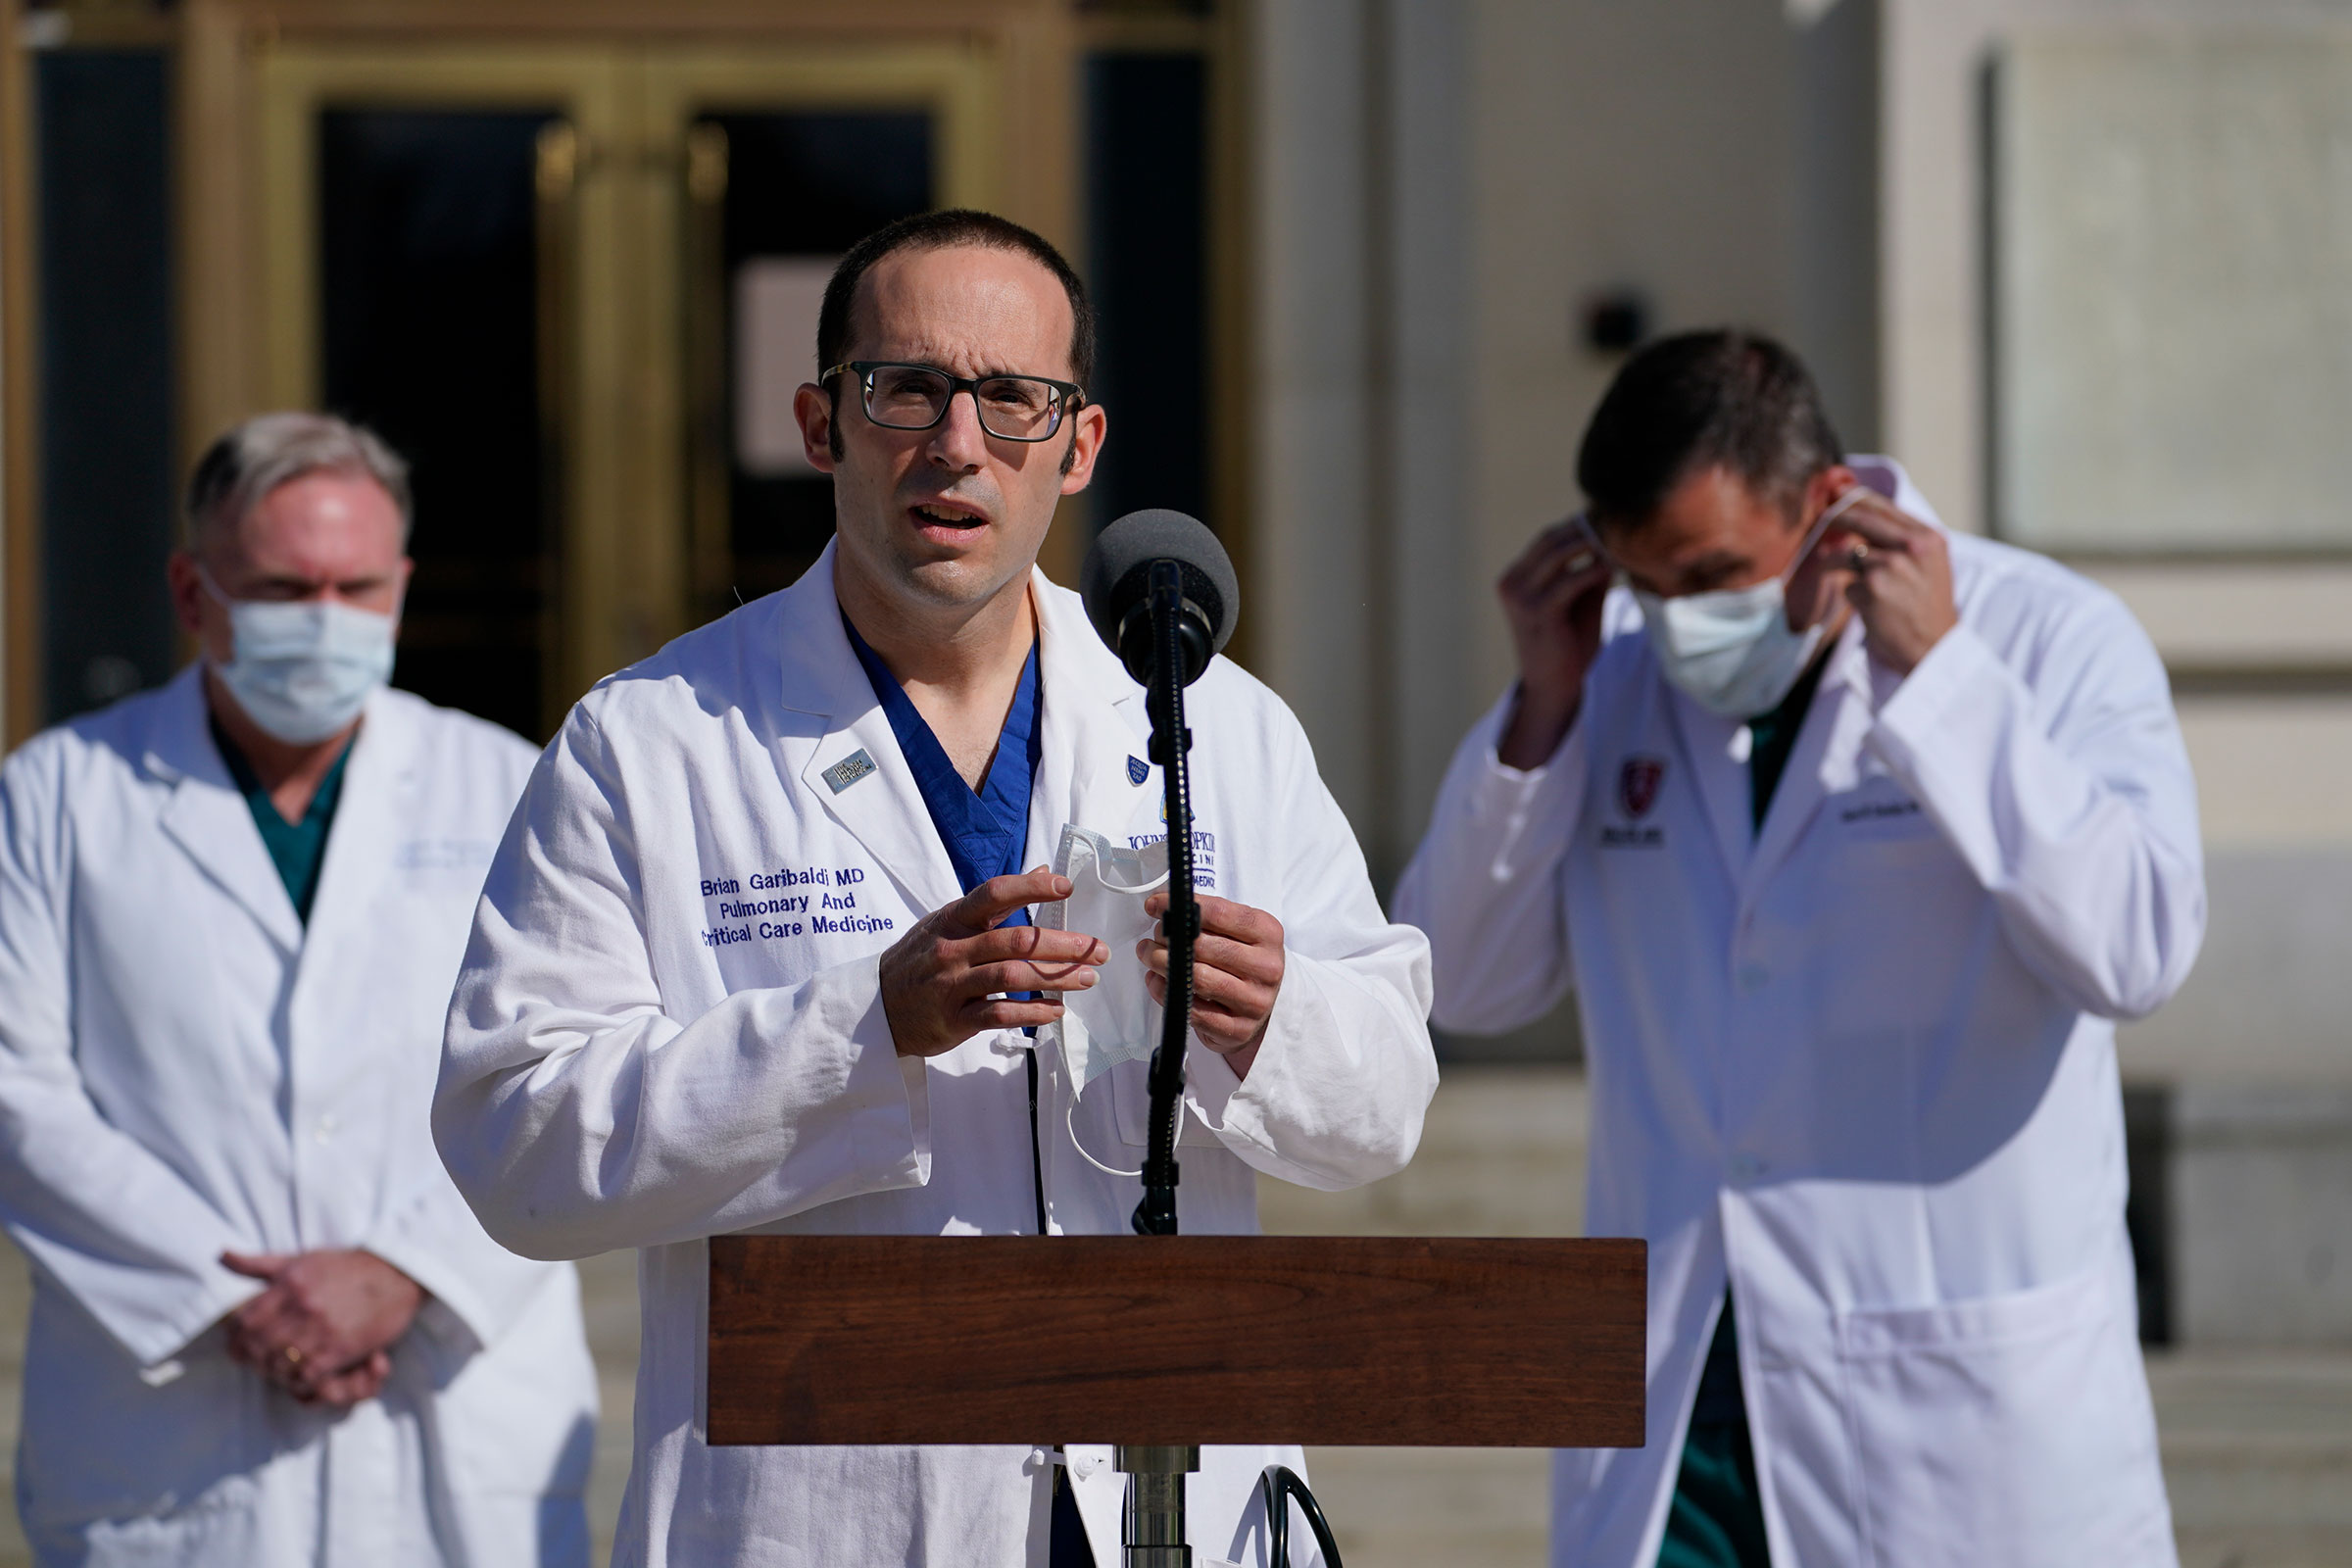 Dr. Brian Garibaldi, talks with reporters at Walter Reed National Military Medical Center on October 5 in Bethesda, Maryland